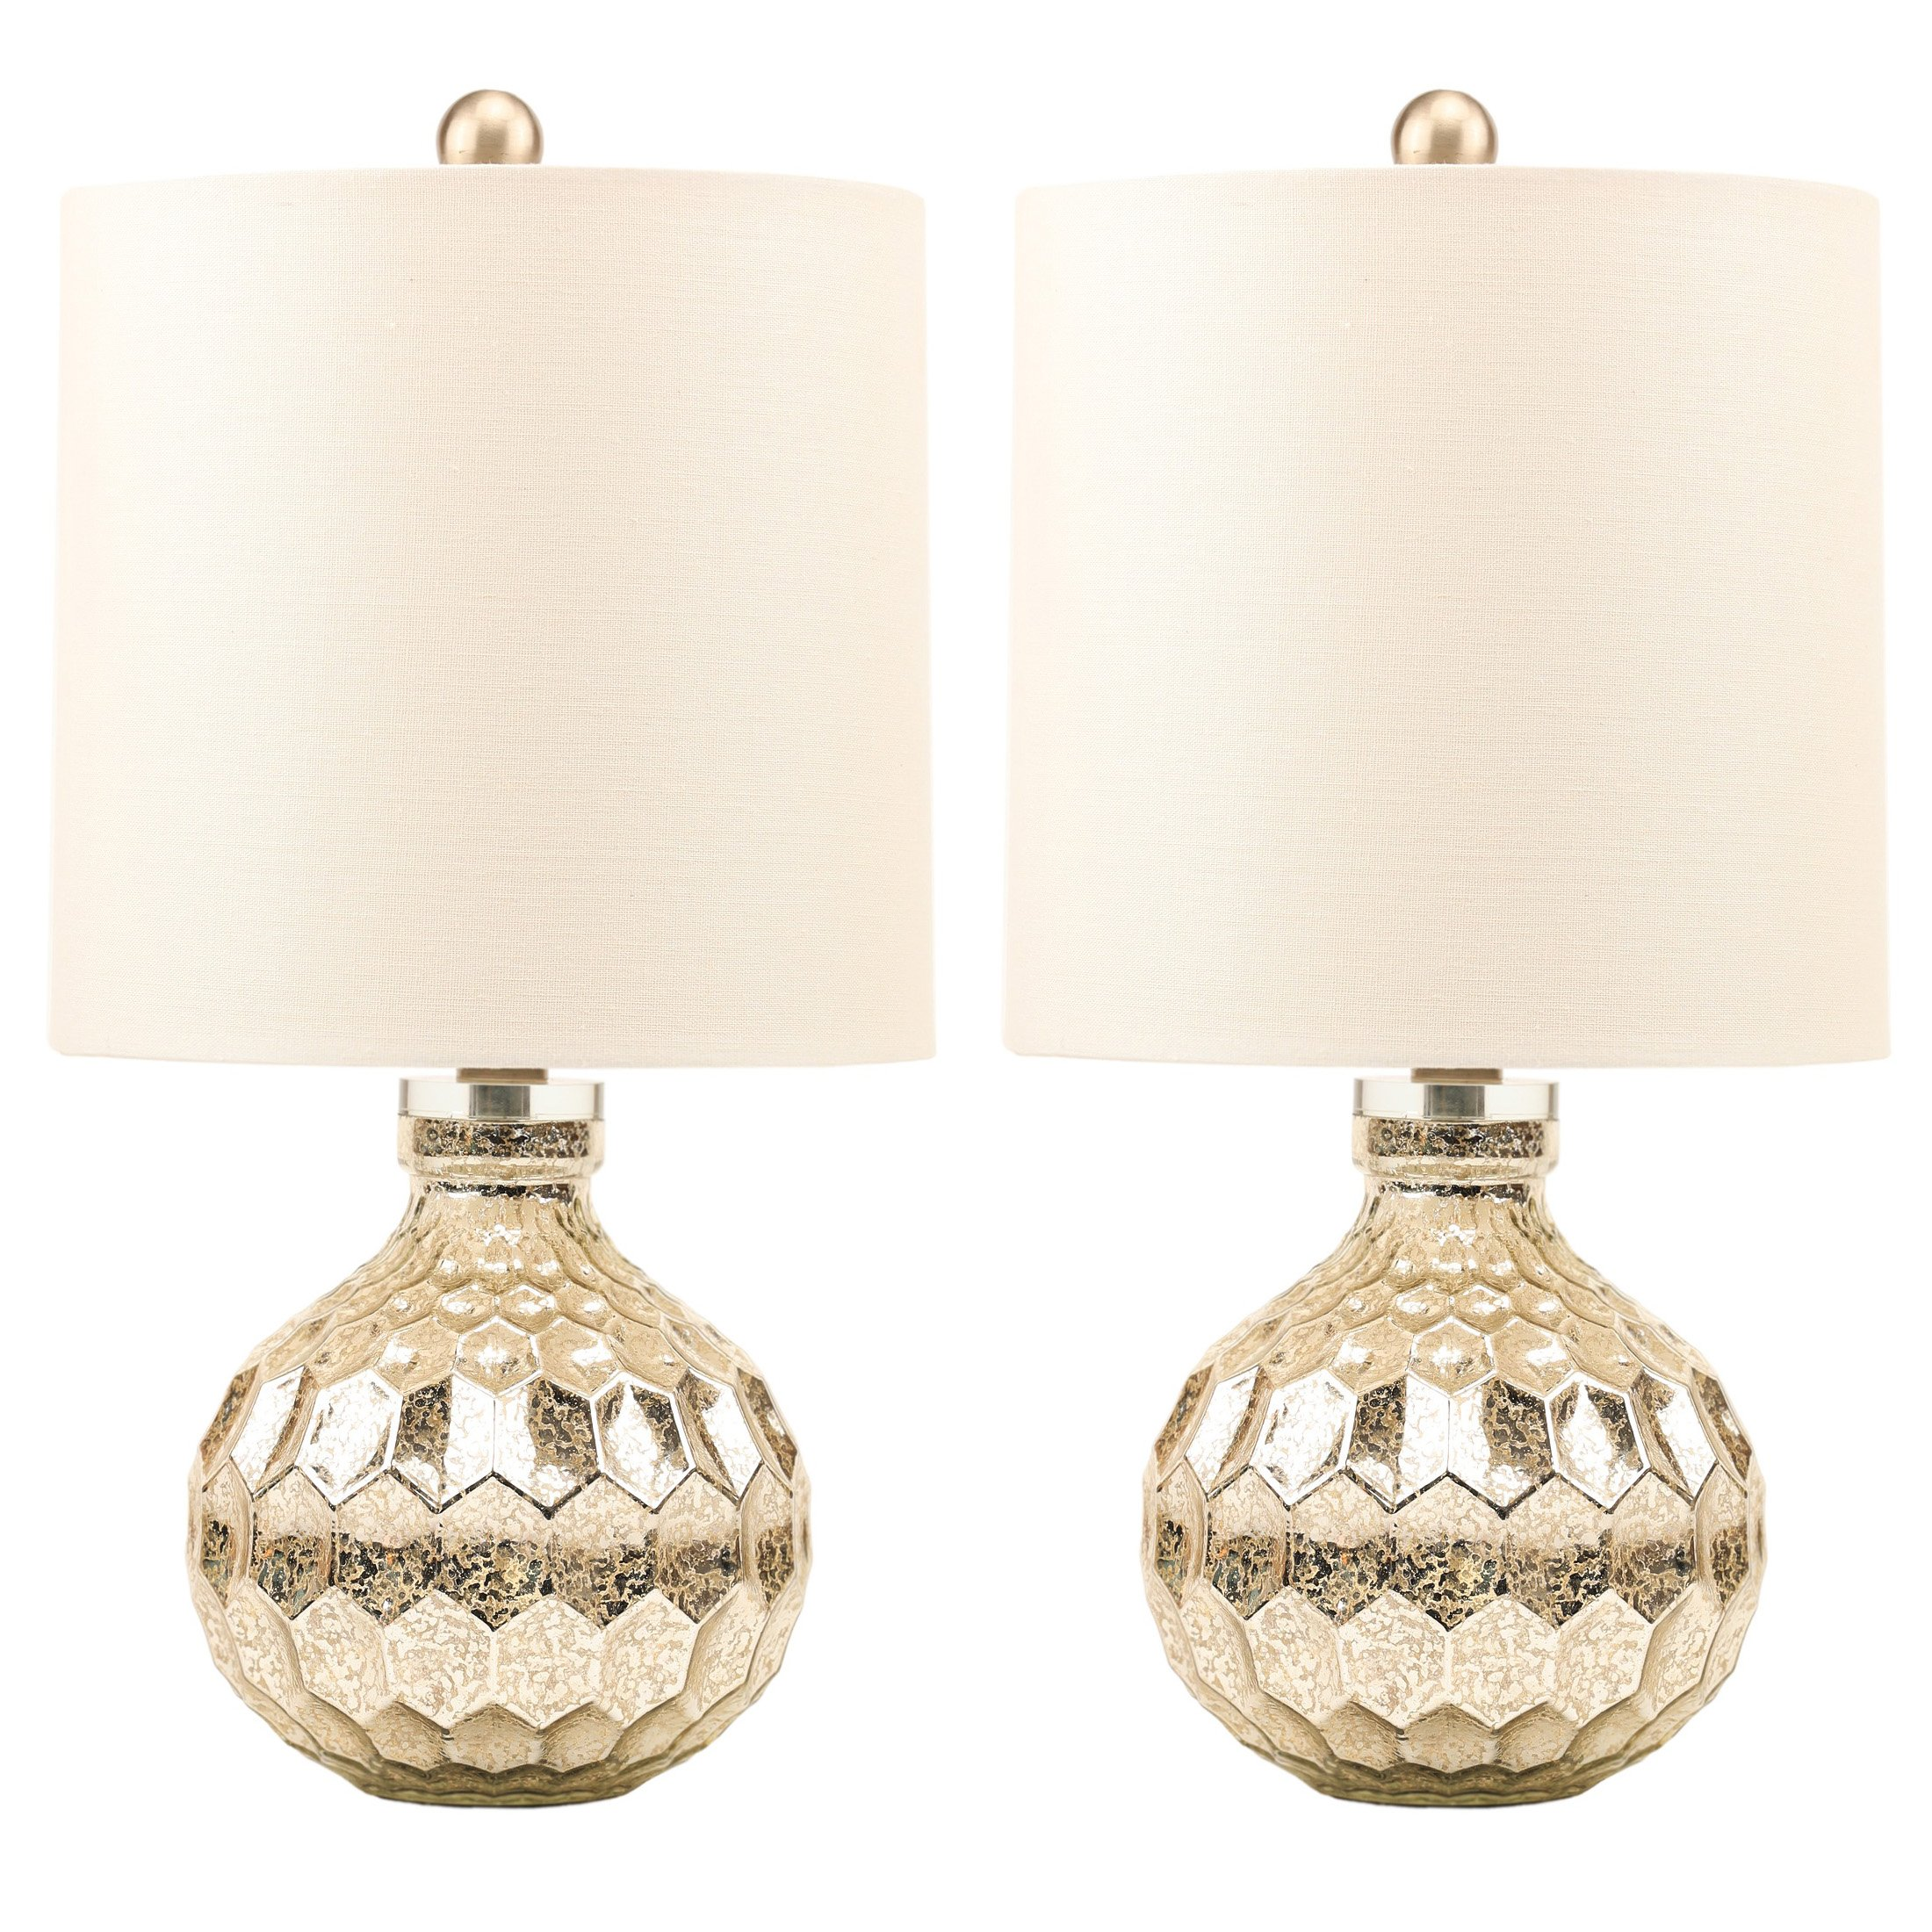 2 x Silver Hexagon Mercury Glass Table Lamp With White Linen Drum Shade,Hand Crafted Elegant Bedroom Lamps For Nightstand Set Of 2,19'' High Harp Construction,E26 Medium Base